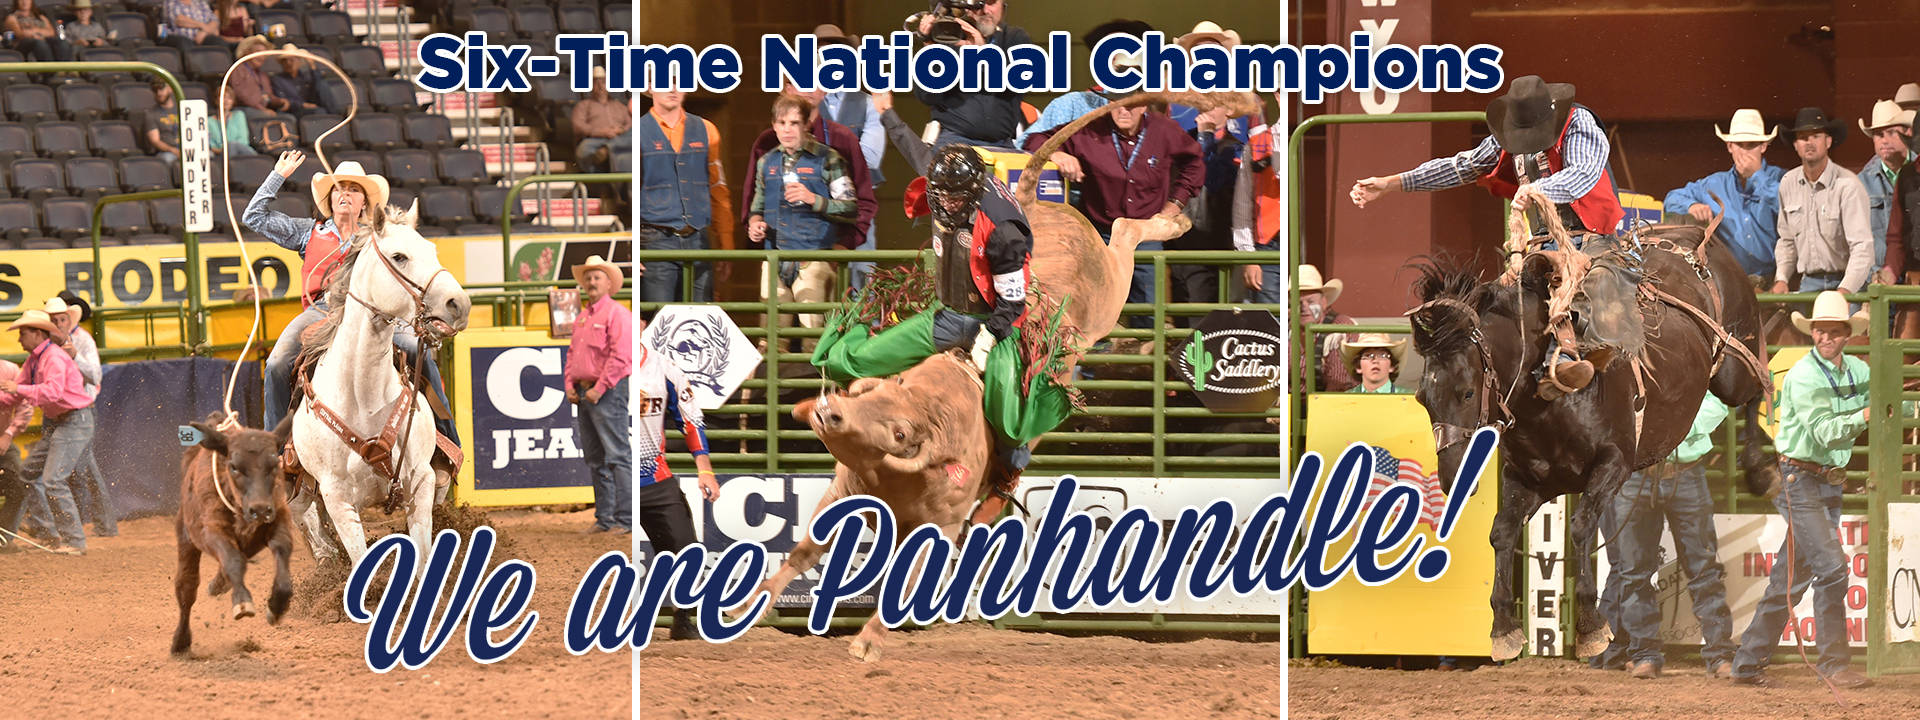 Rodeo-ers roping and riding with text: Six Time National Champions - We Are Panhandle!